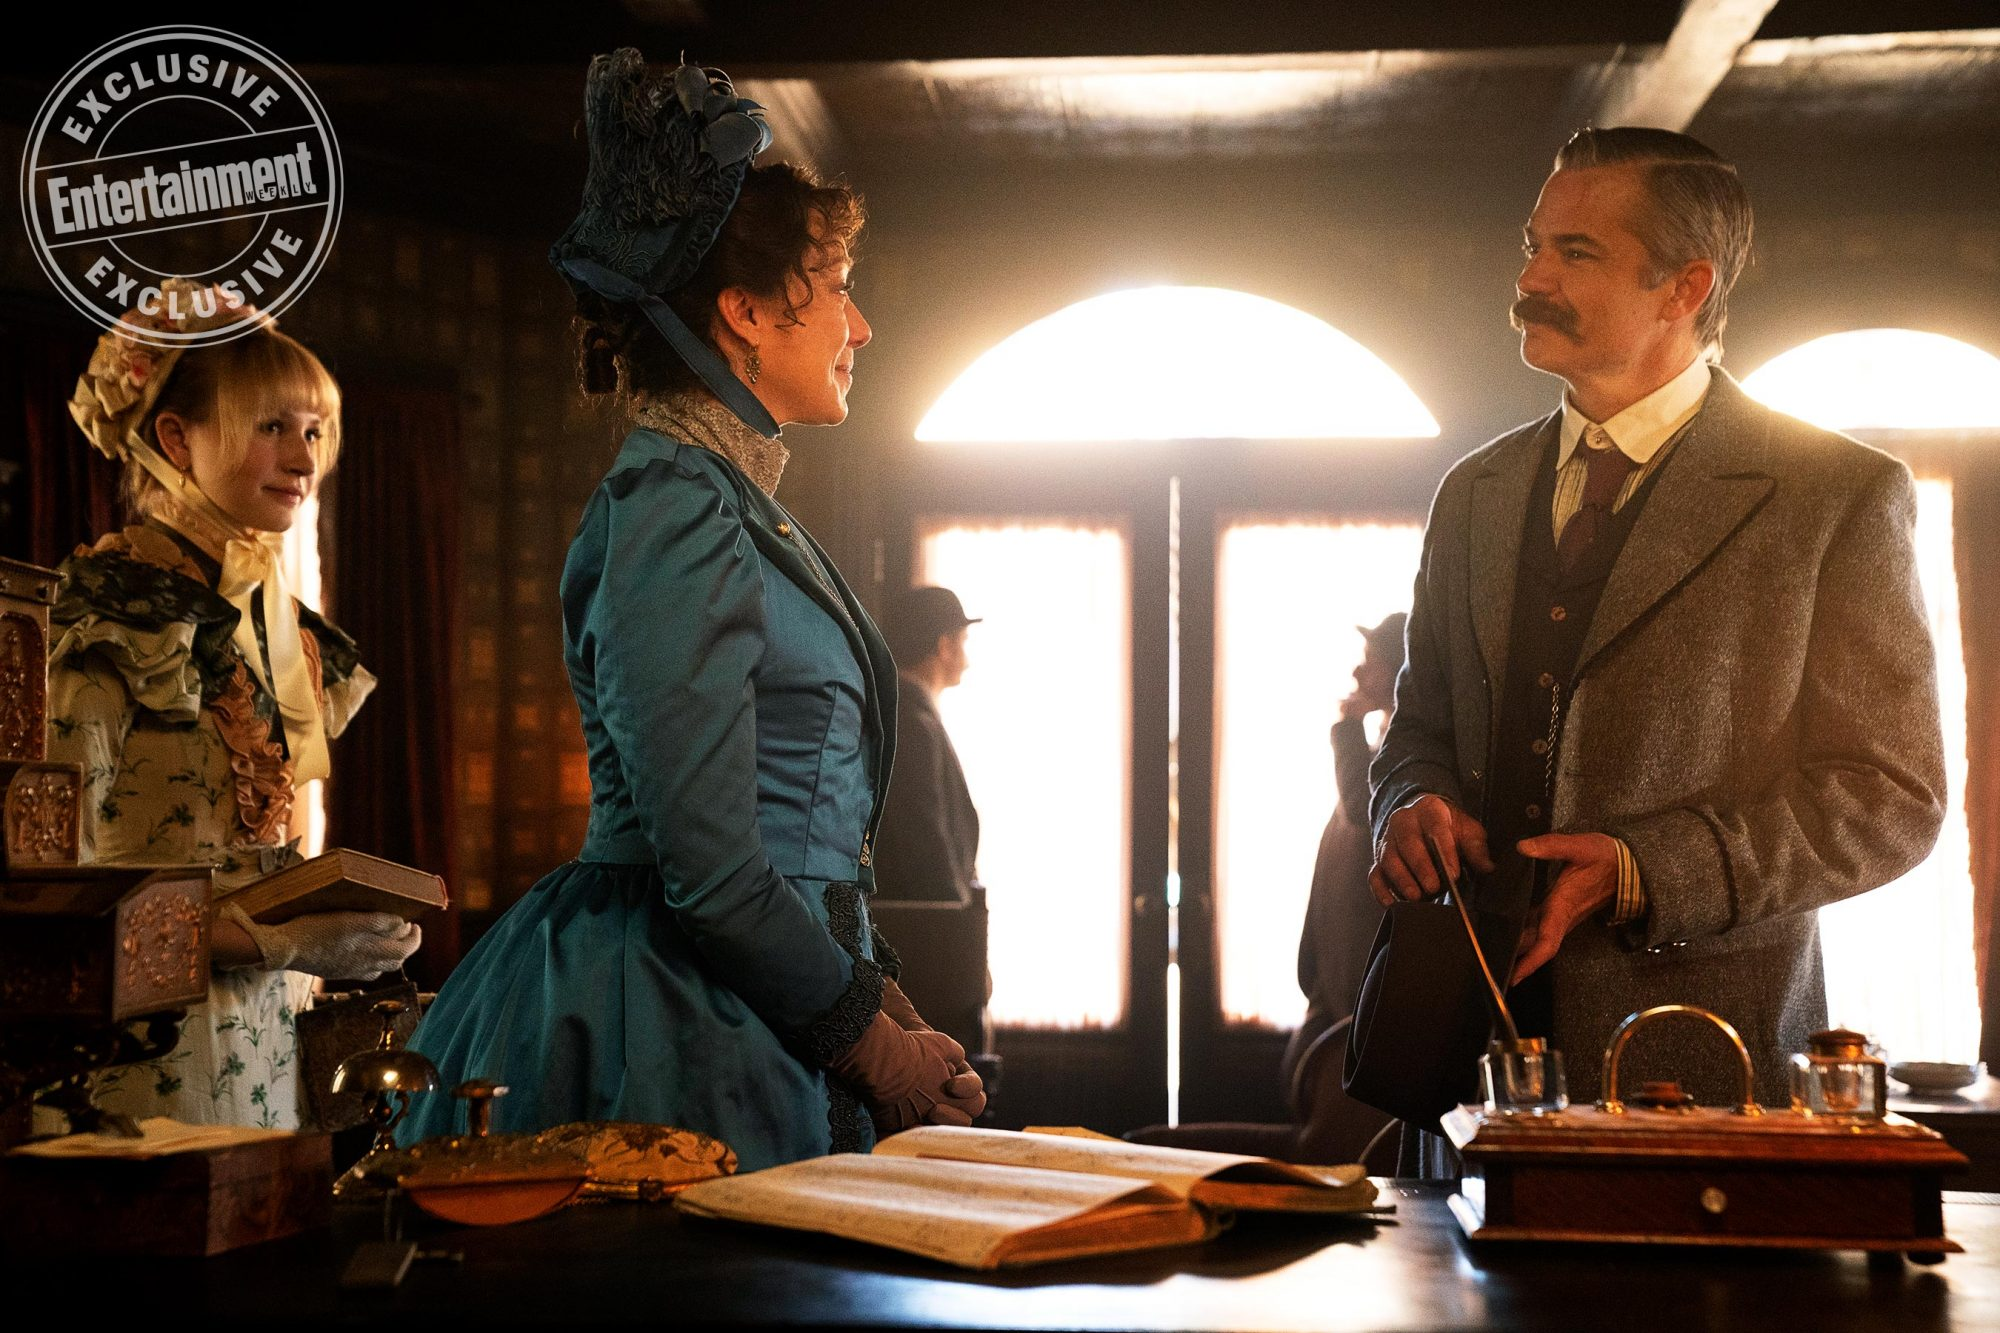 Deadwood: The MoviePictured: Lilly Keene, Molly Parker, Timothy Olyphant